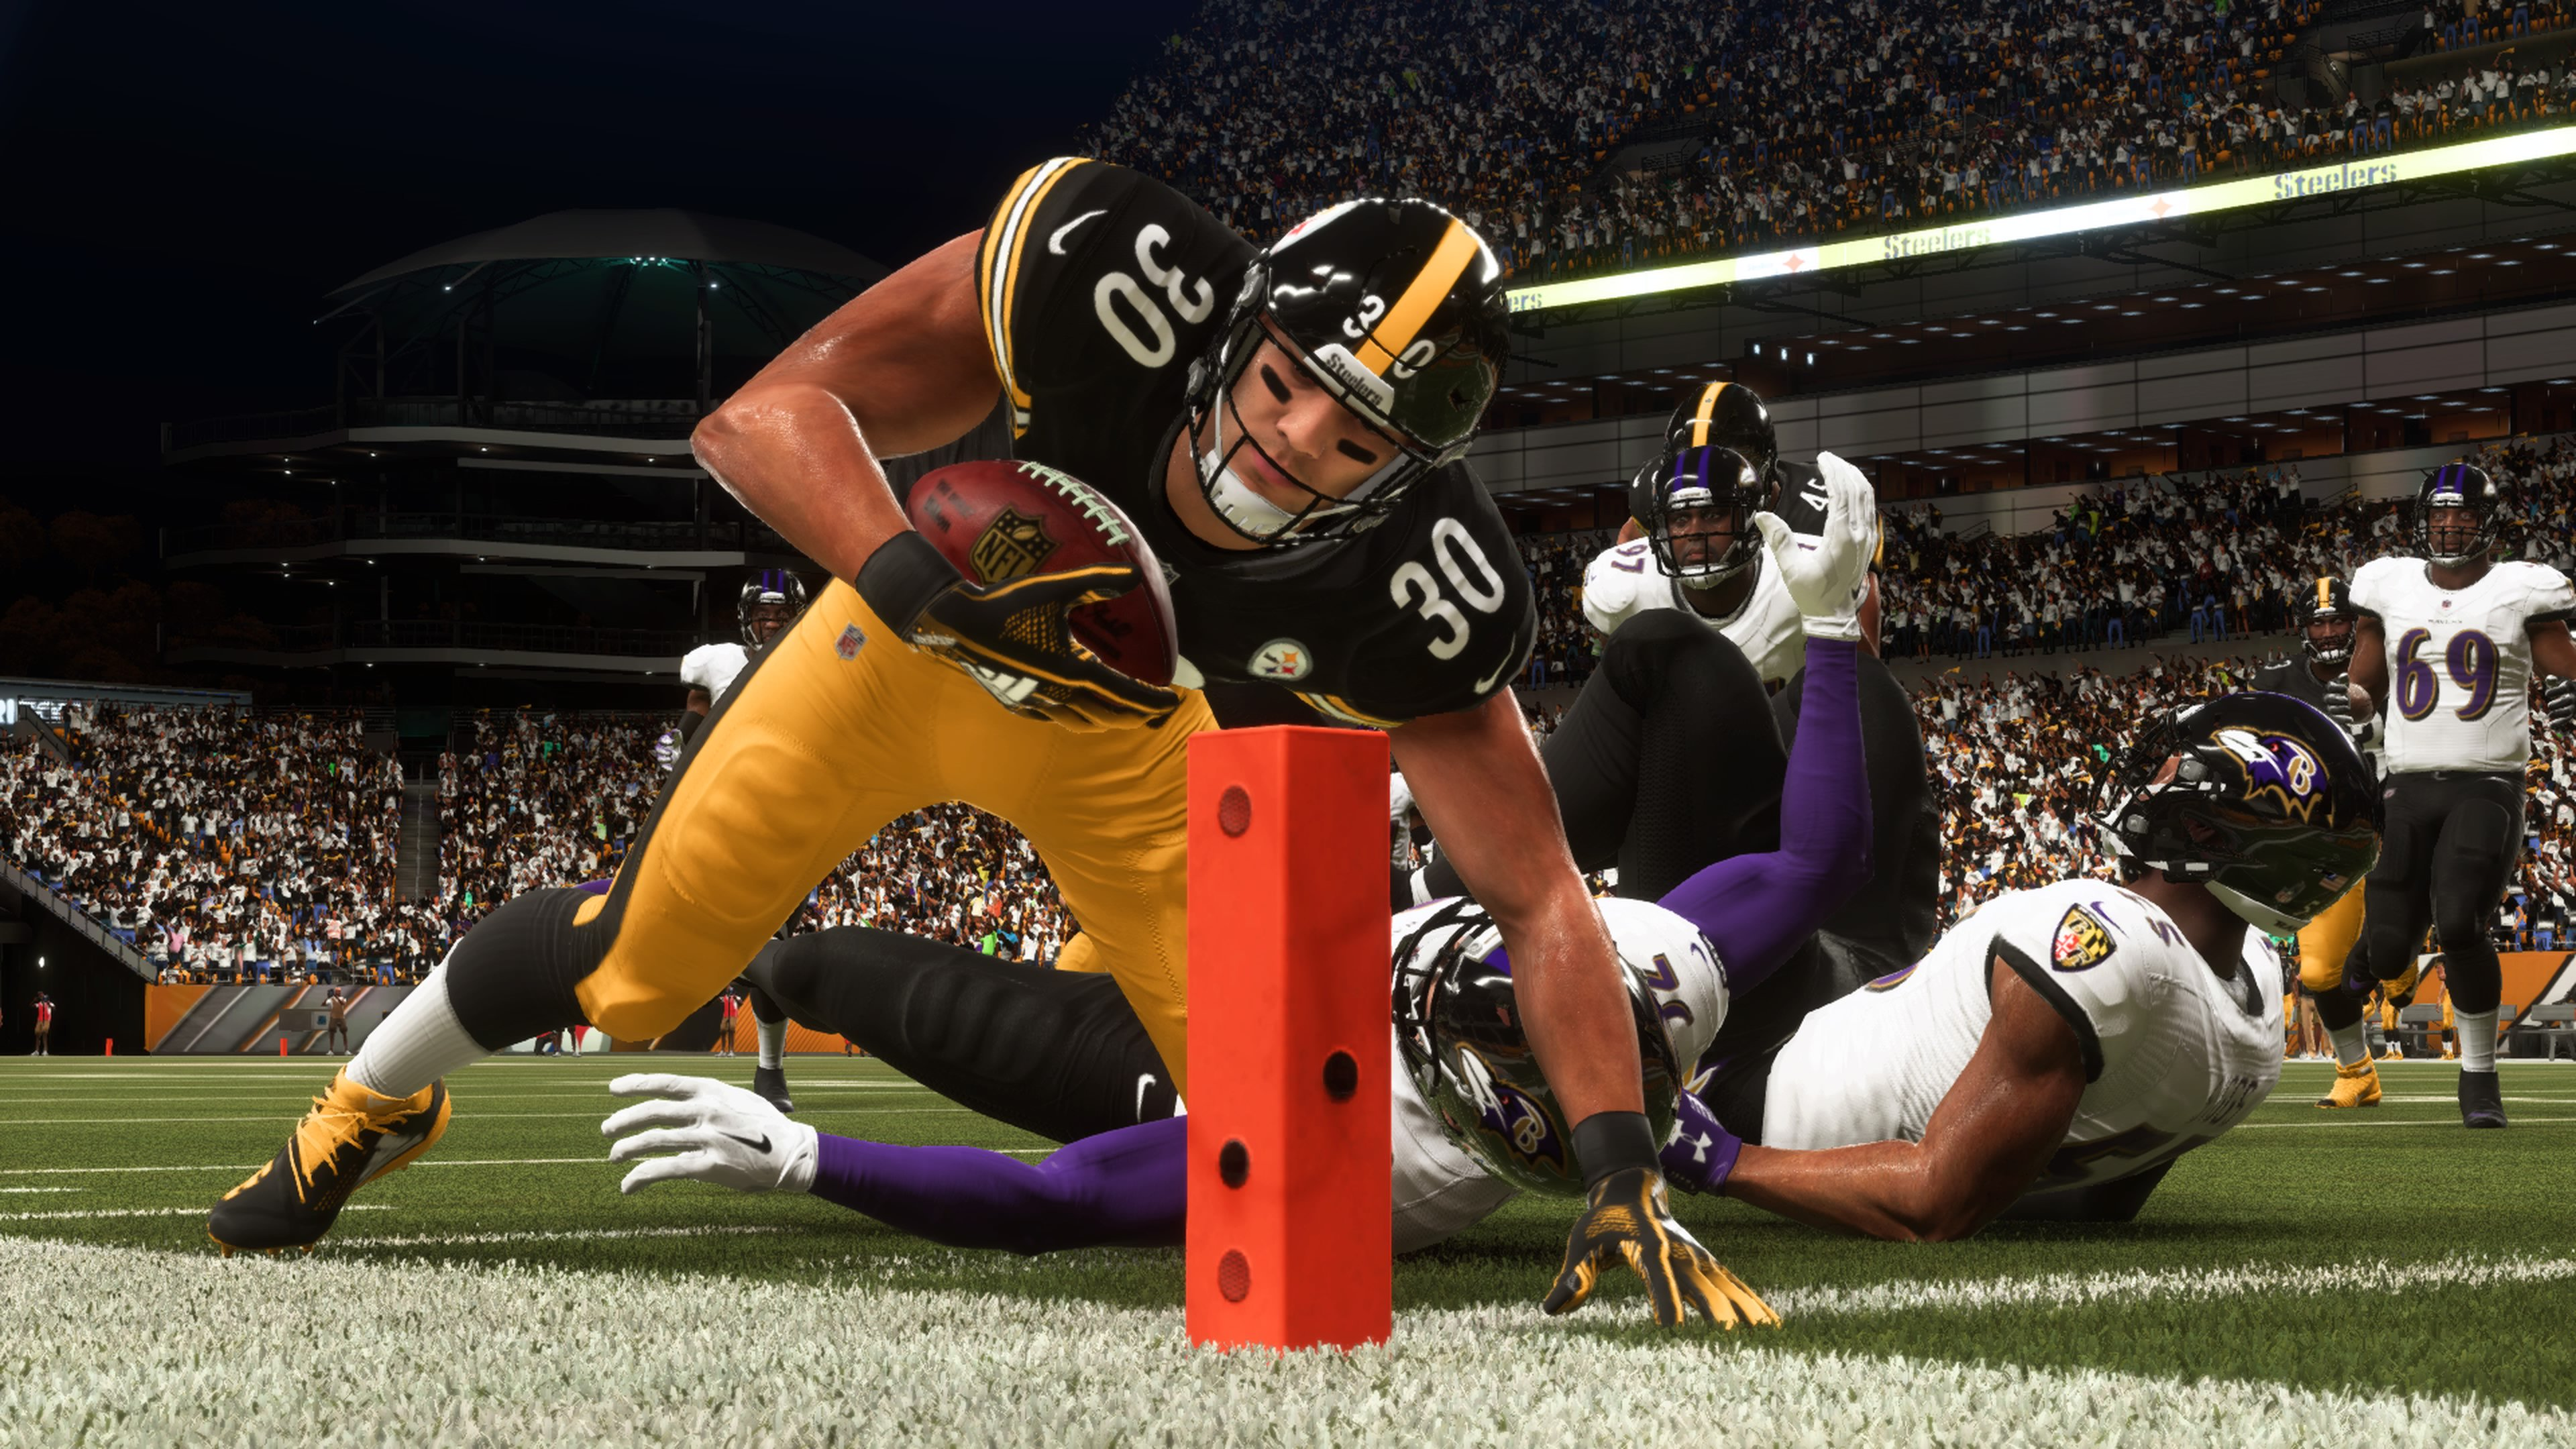 madden nfl 19 tools to create a unique cfm experience sim sports